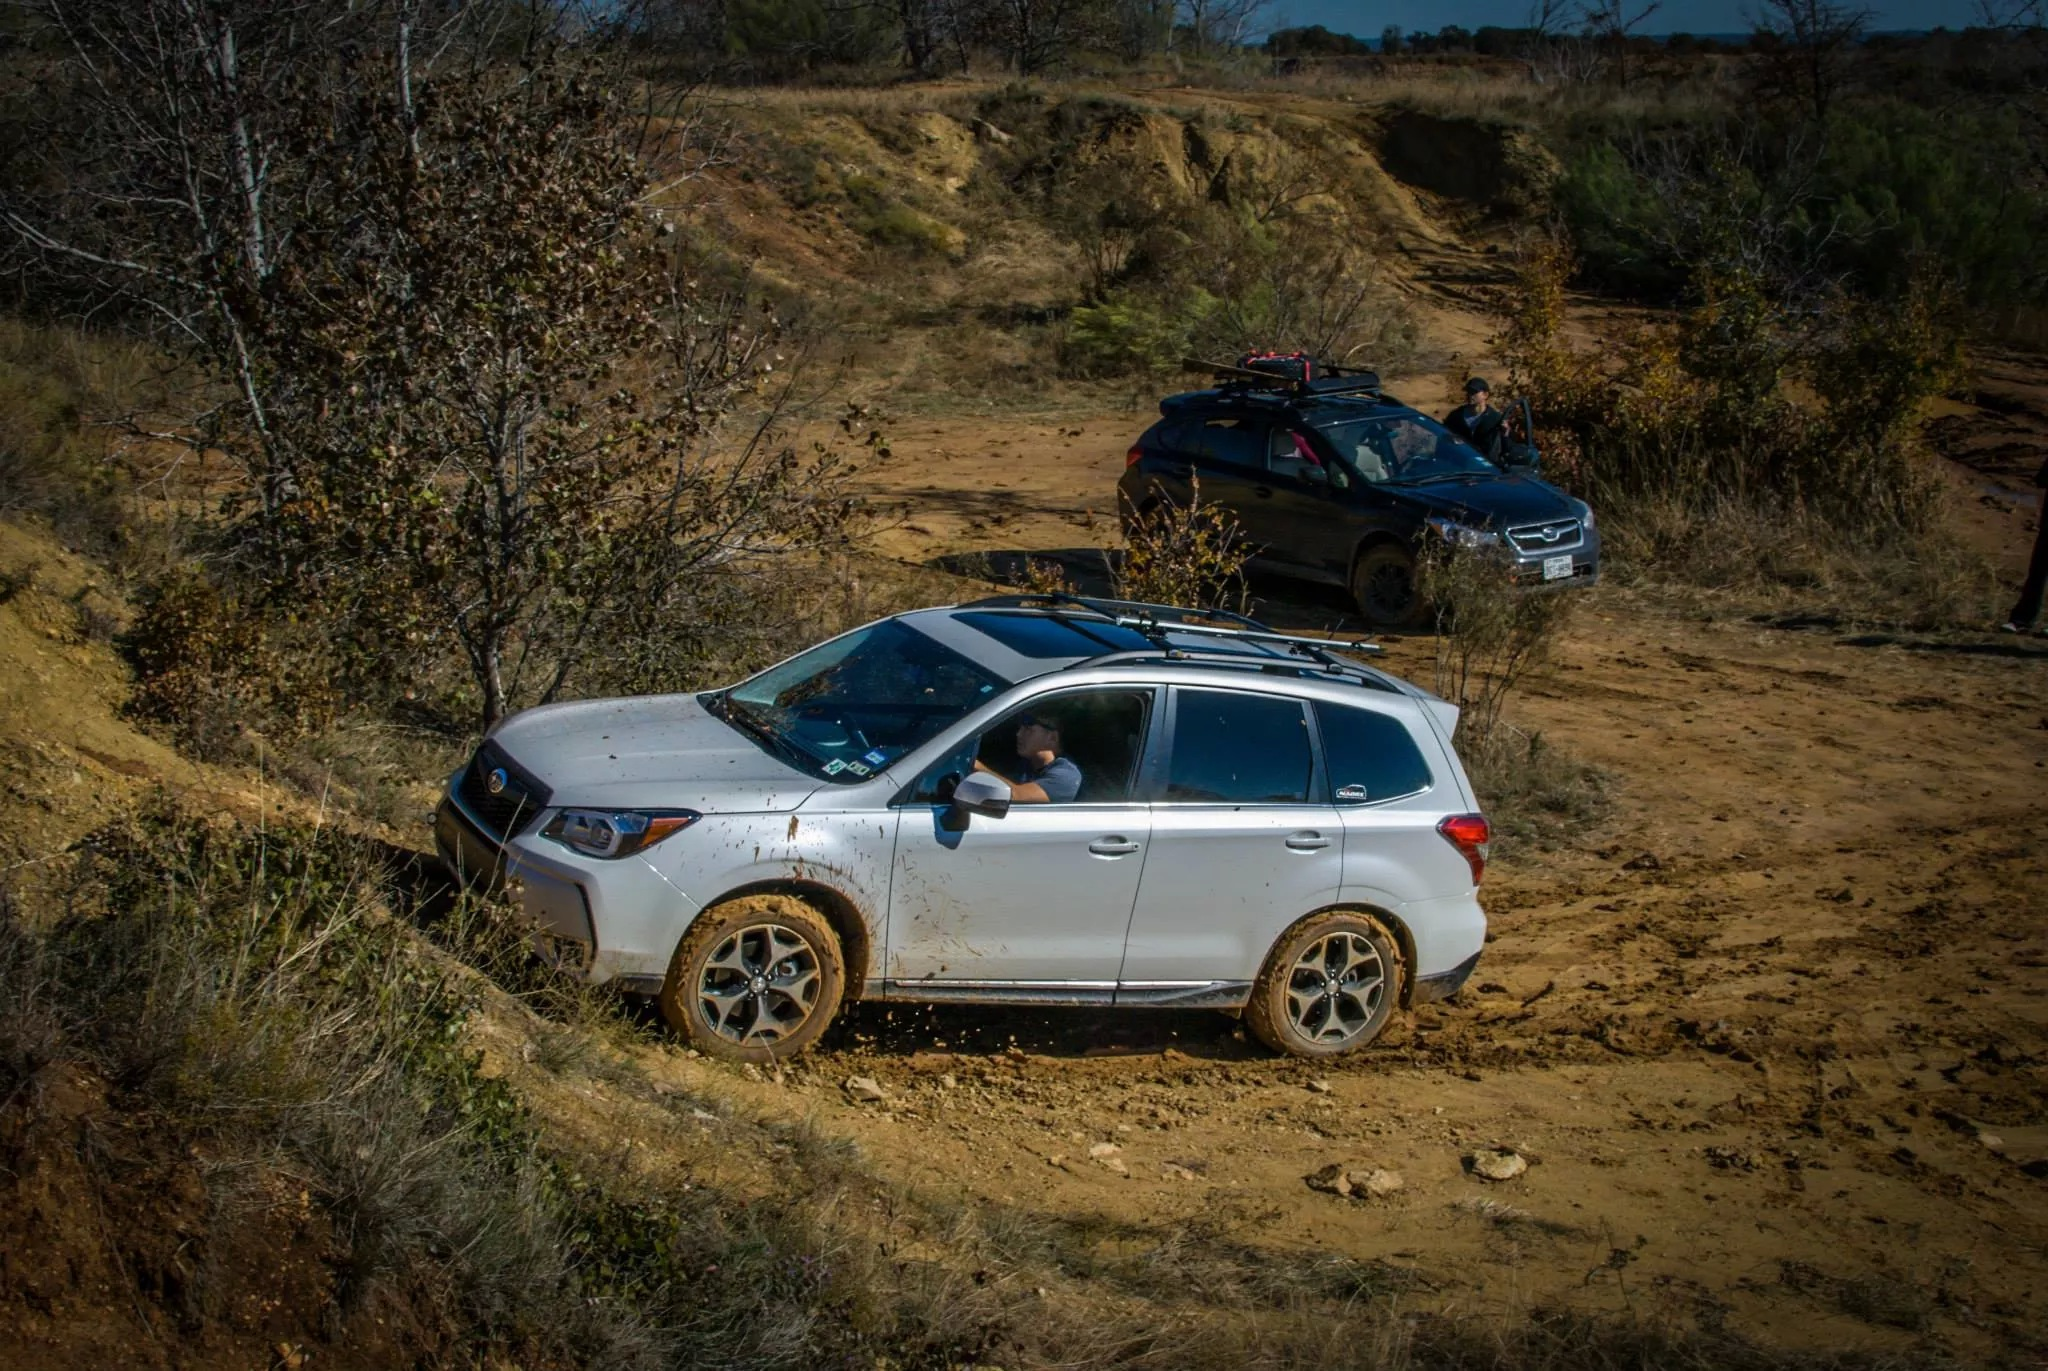 14 18 Kevin s 2015 Forester XT Touring SWP Subaru